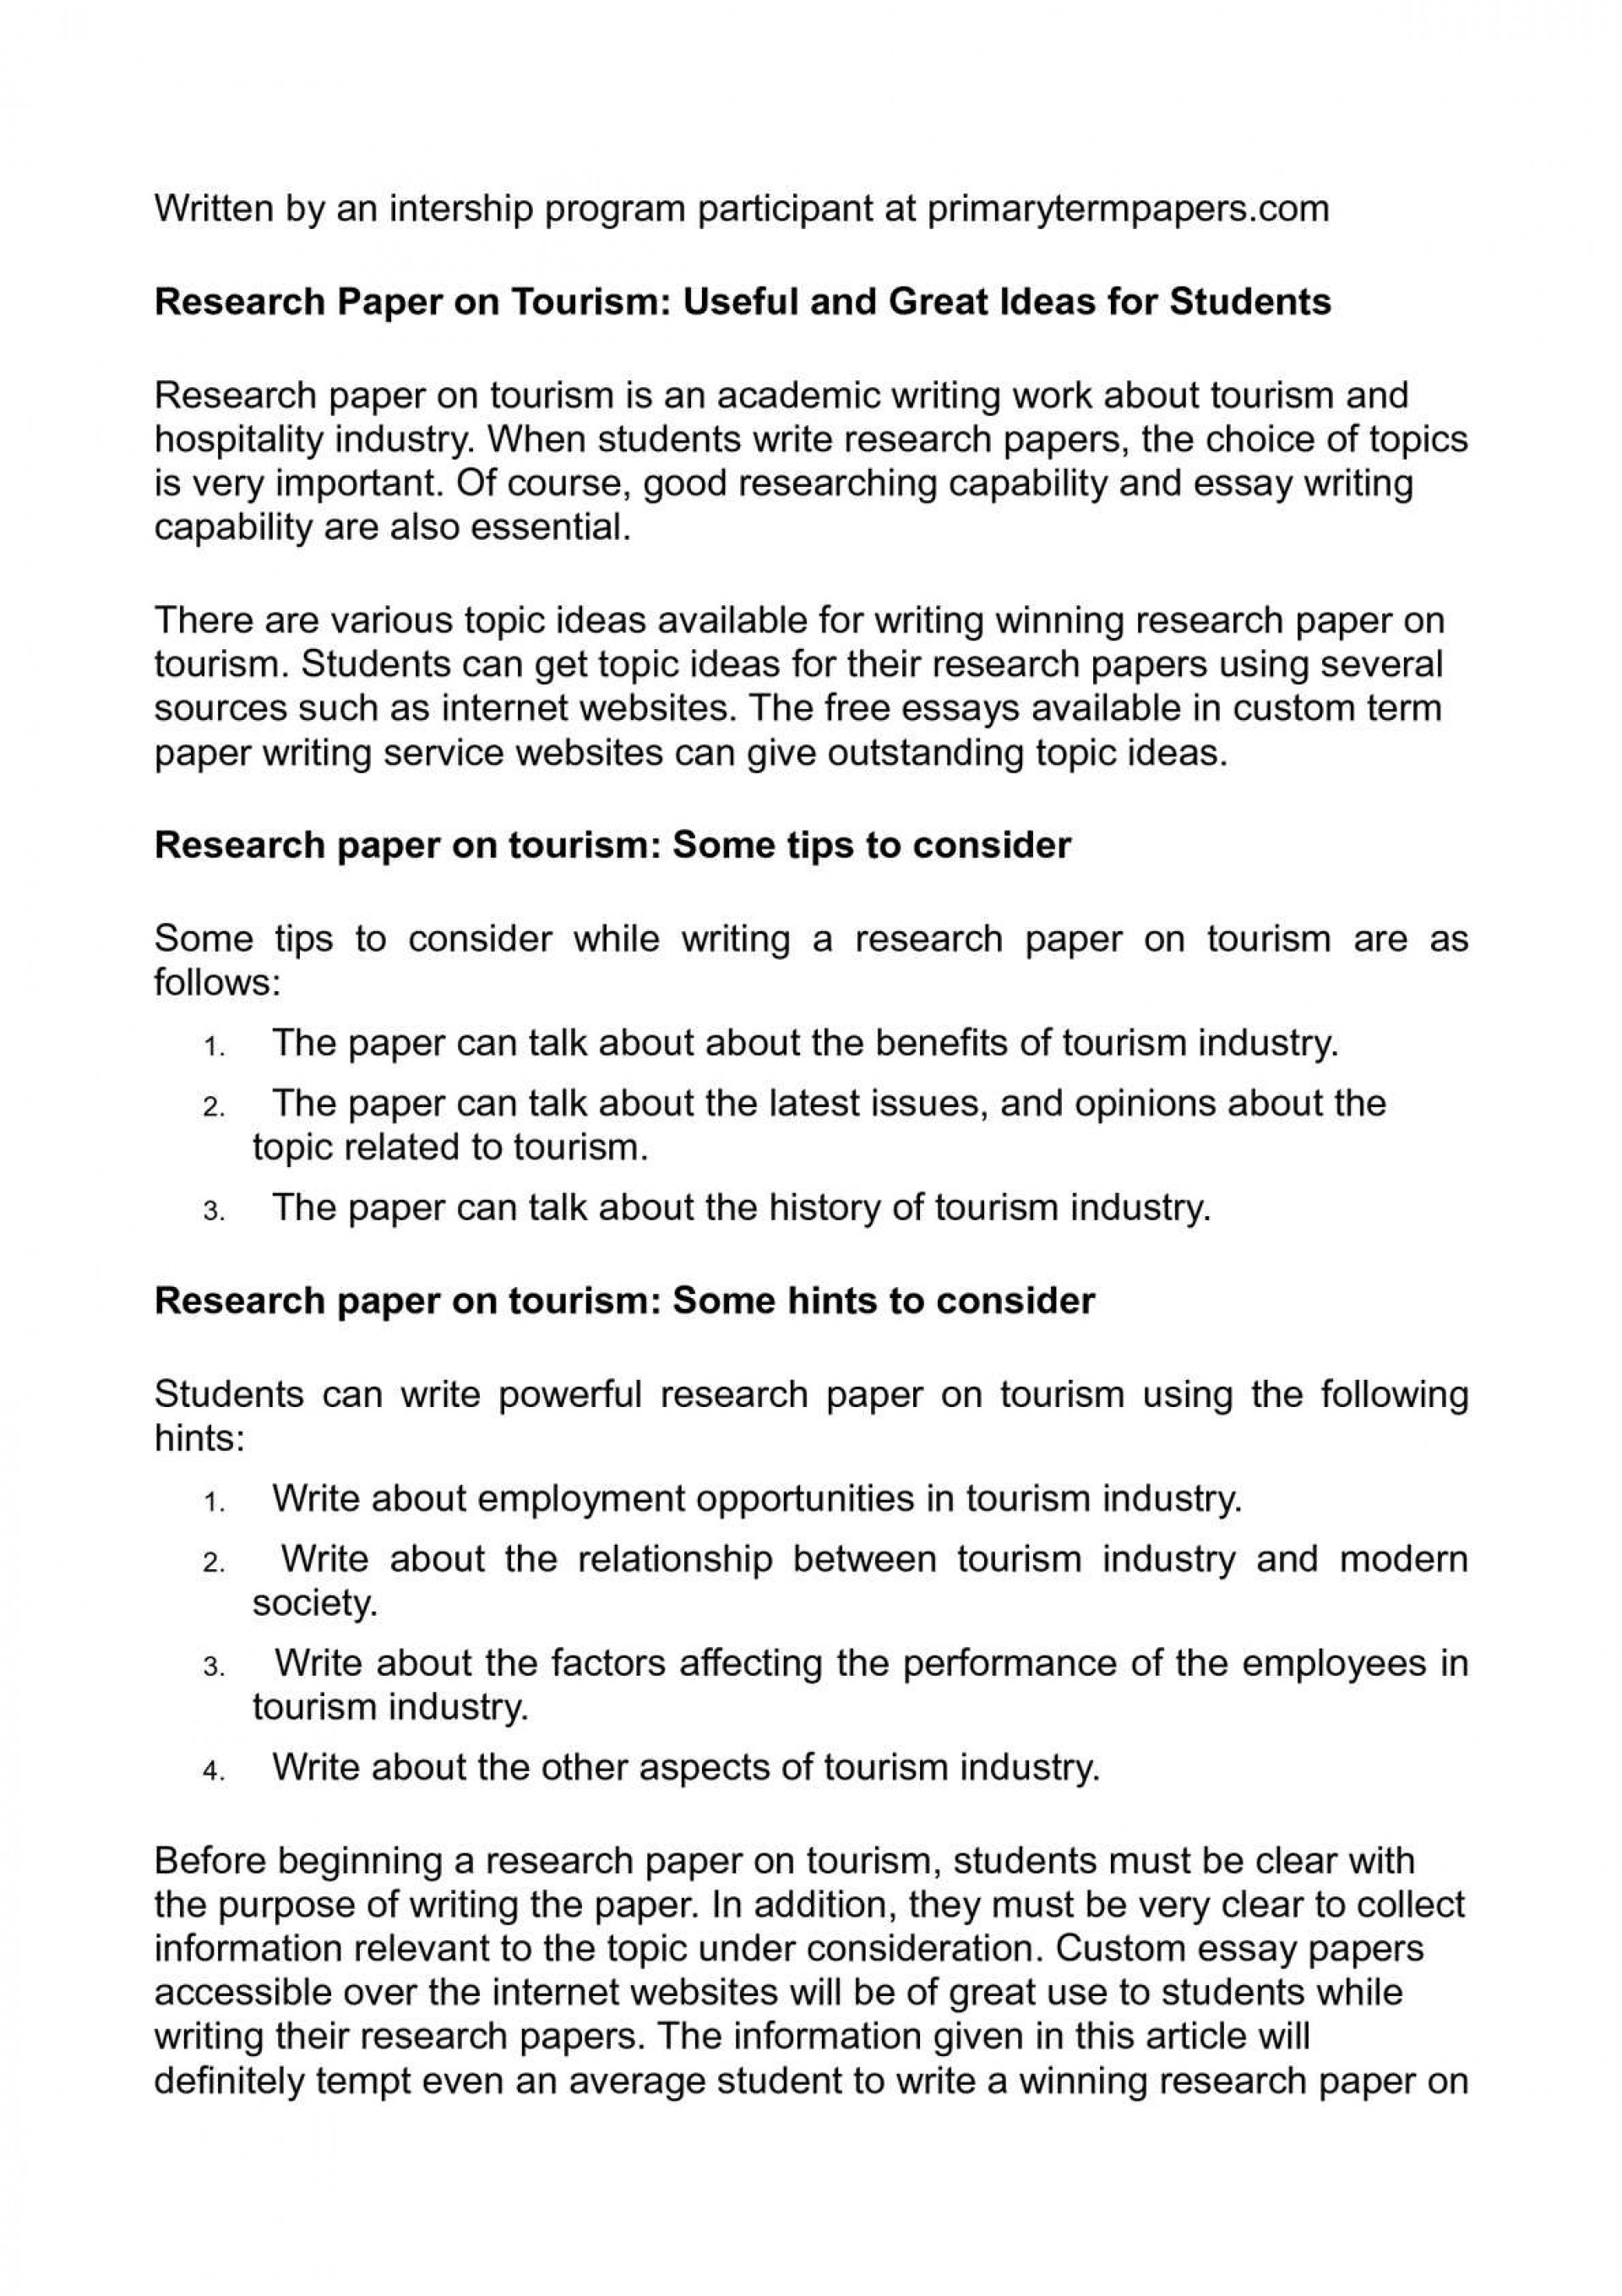 006 Research Paper P1 Topics To Writebout In Shocking Write About A Health On 1920